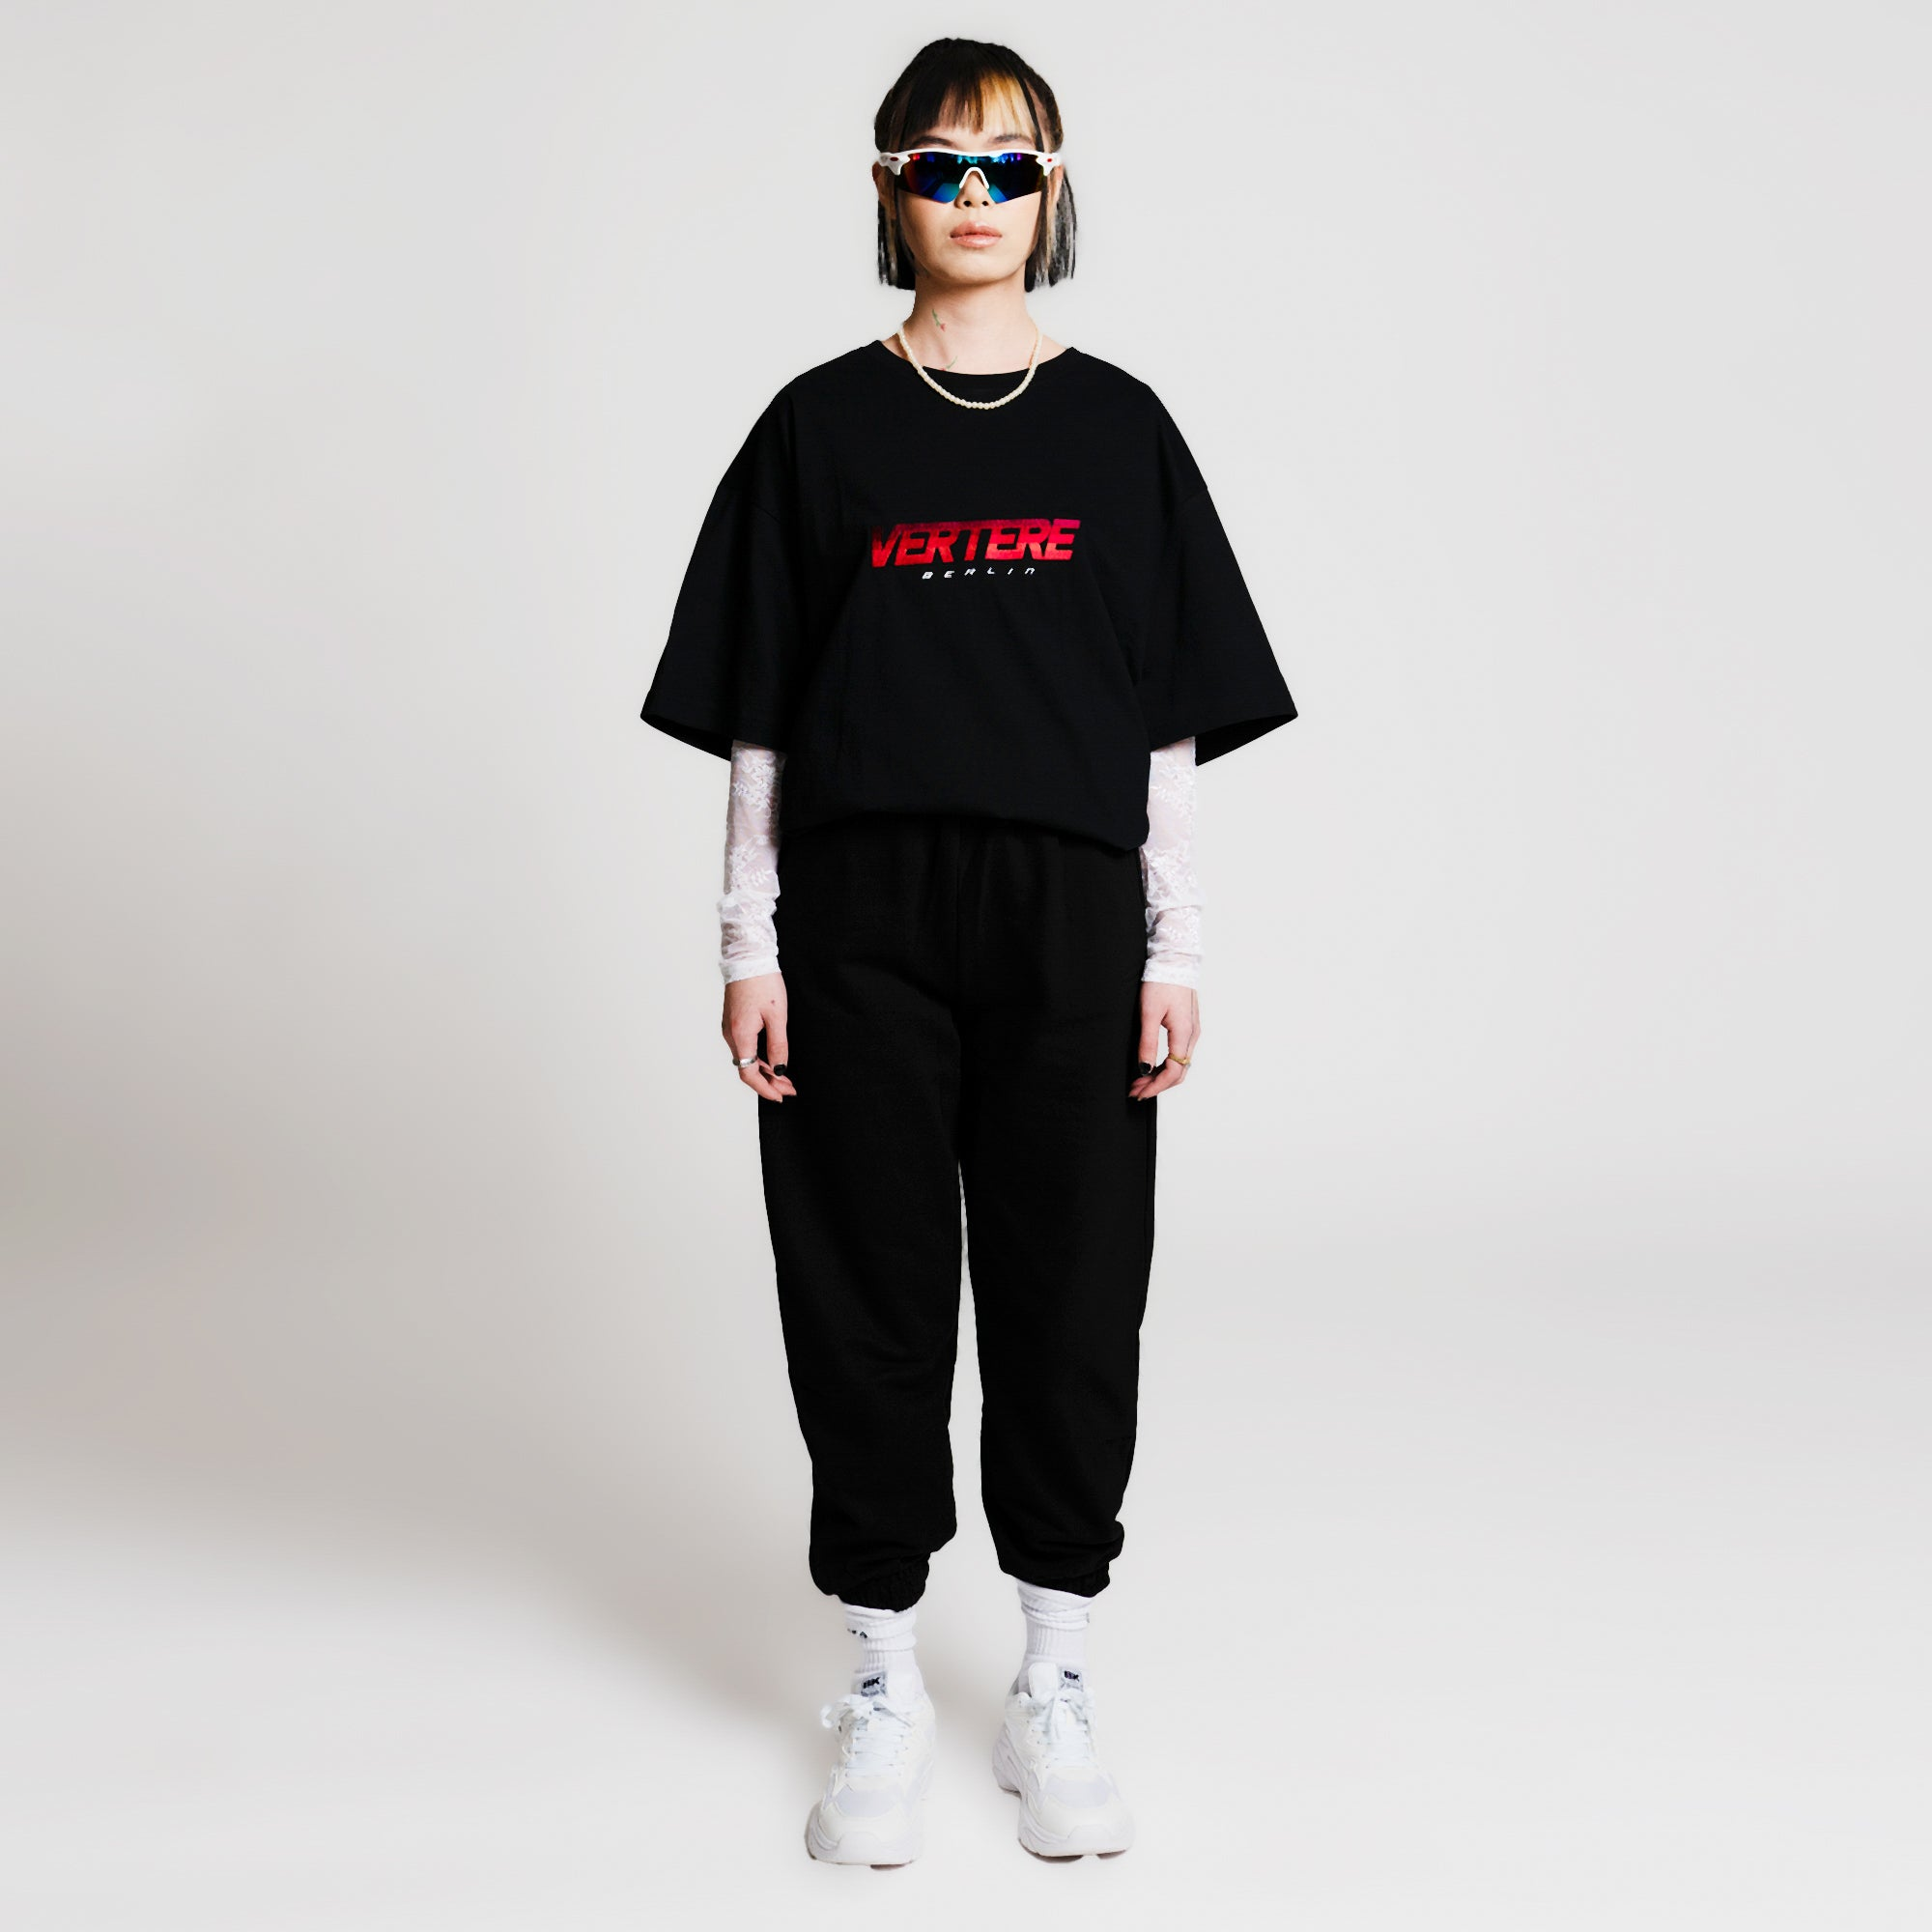 BLOCK LETTER T-SHIRT - BLACK/RED